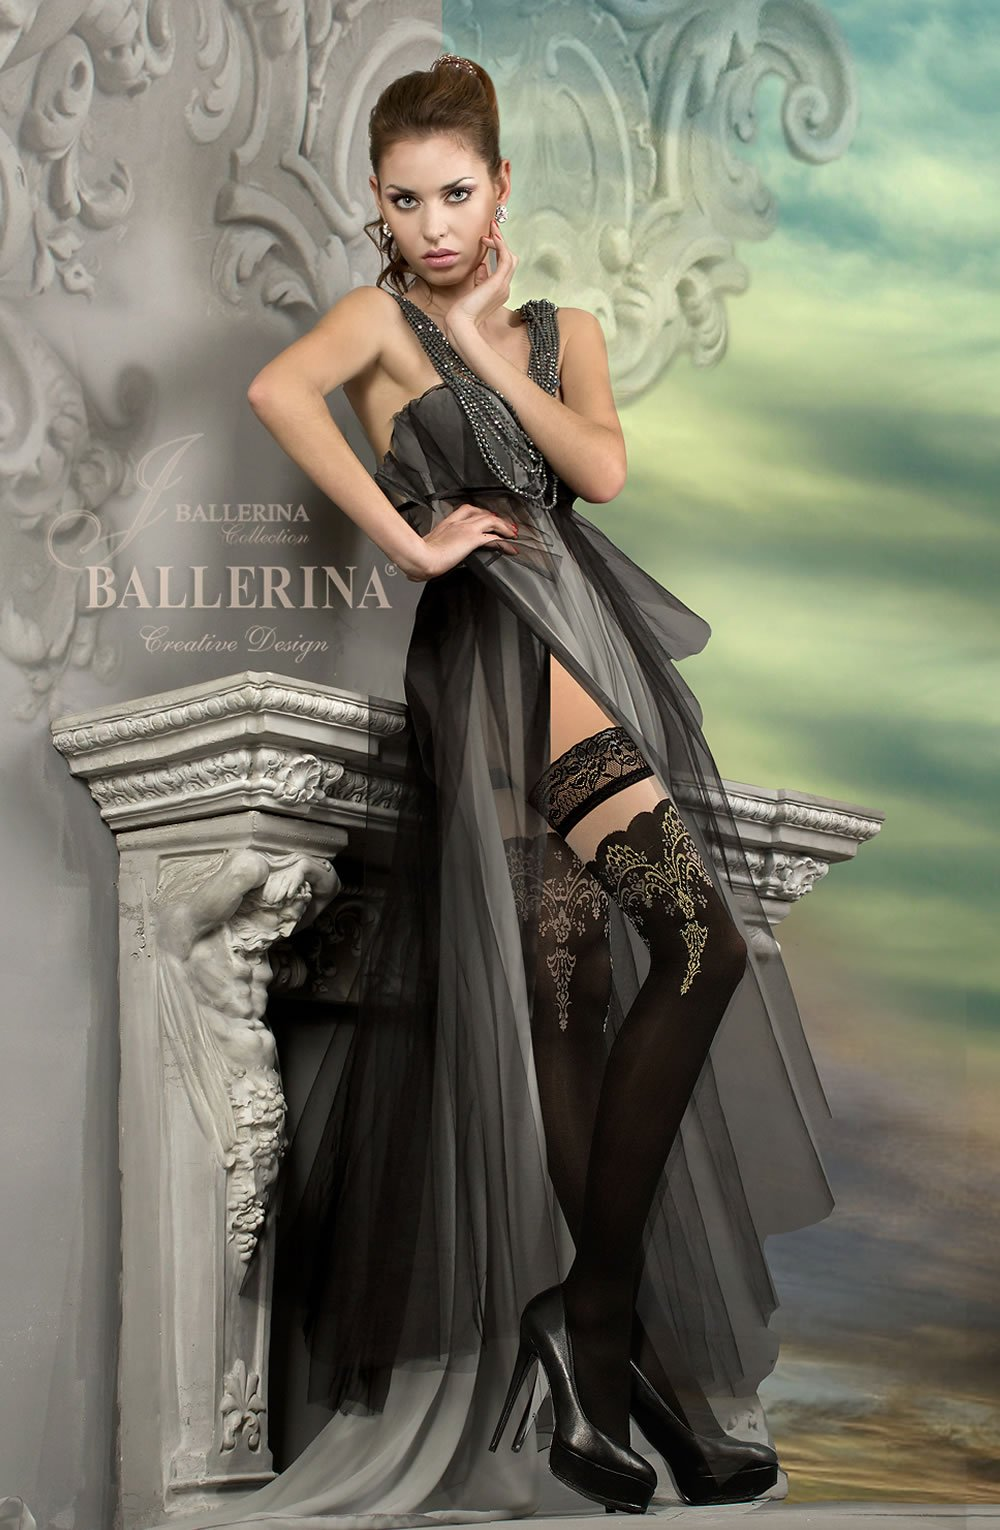 Ballerina 220 Hold Up Nero (Black) - Lingerie Best Lingerie